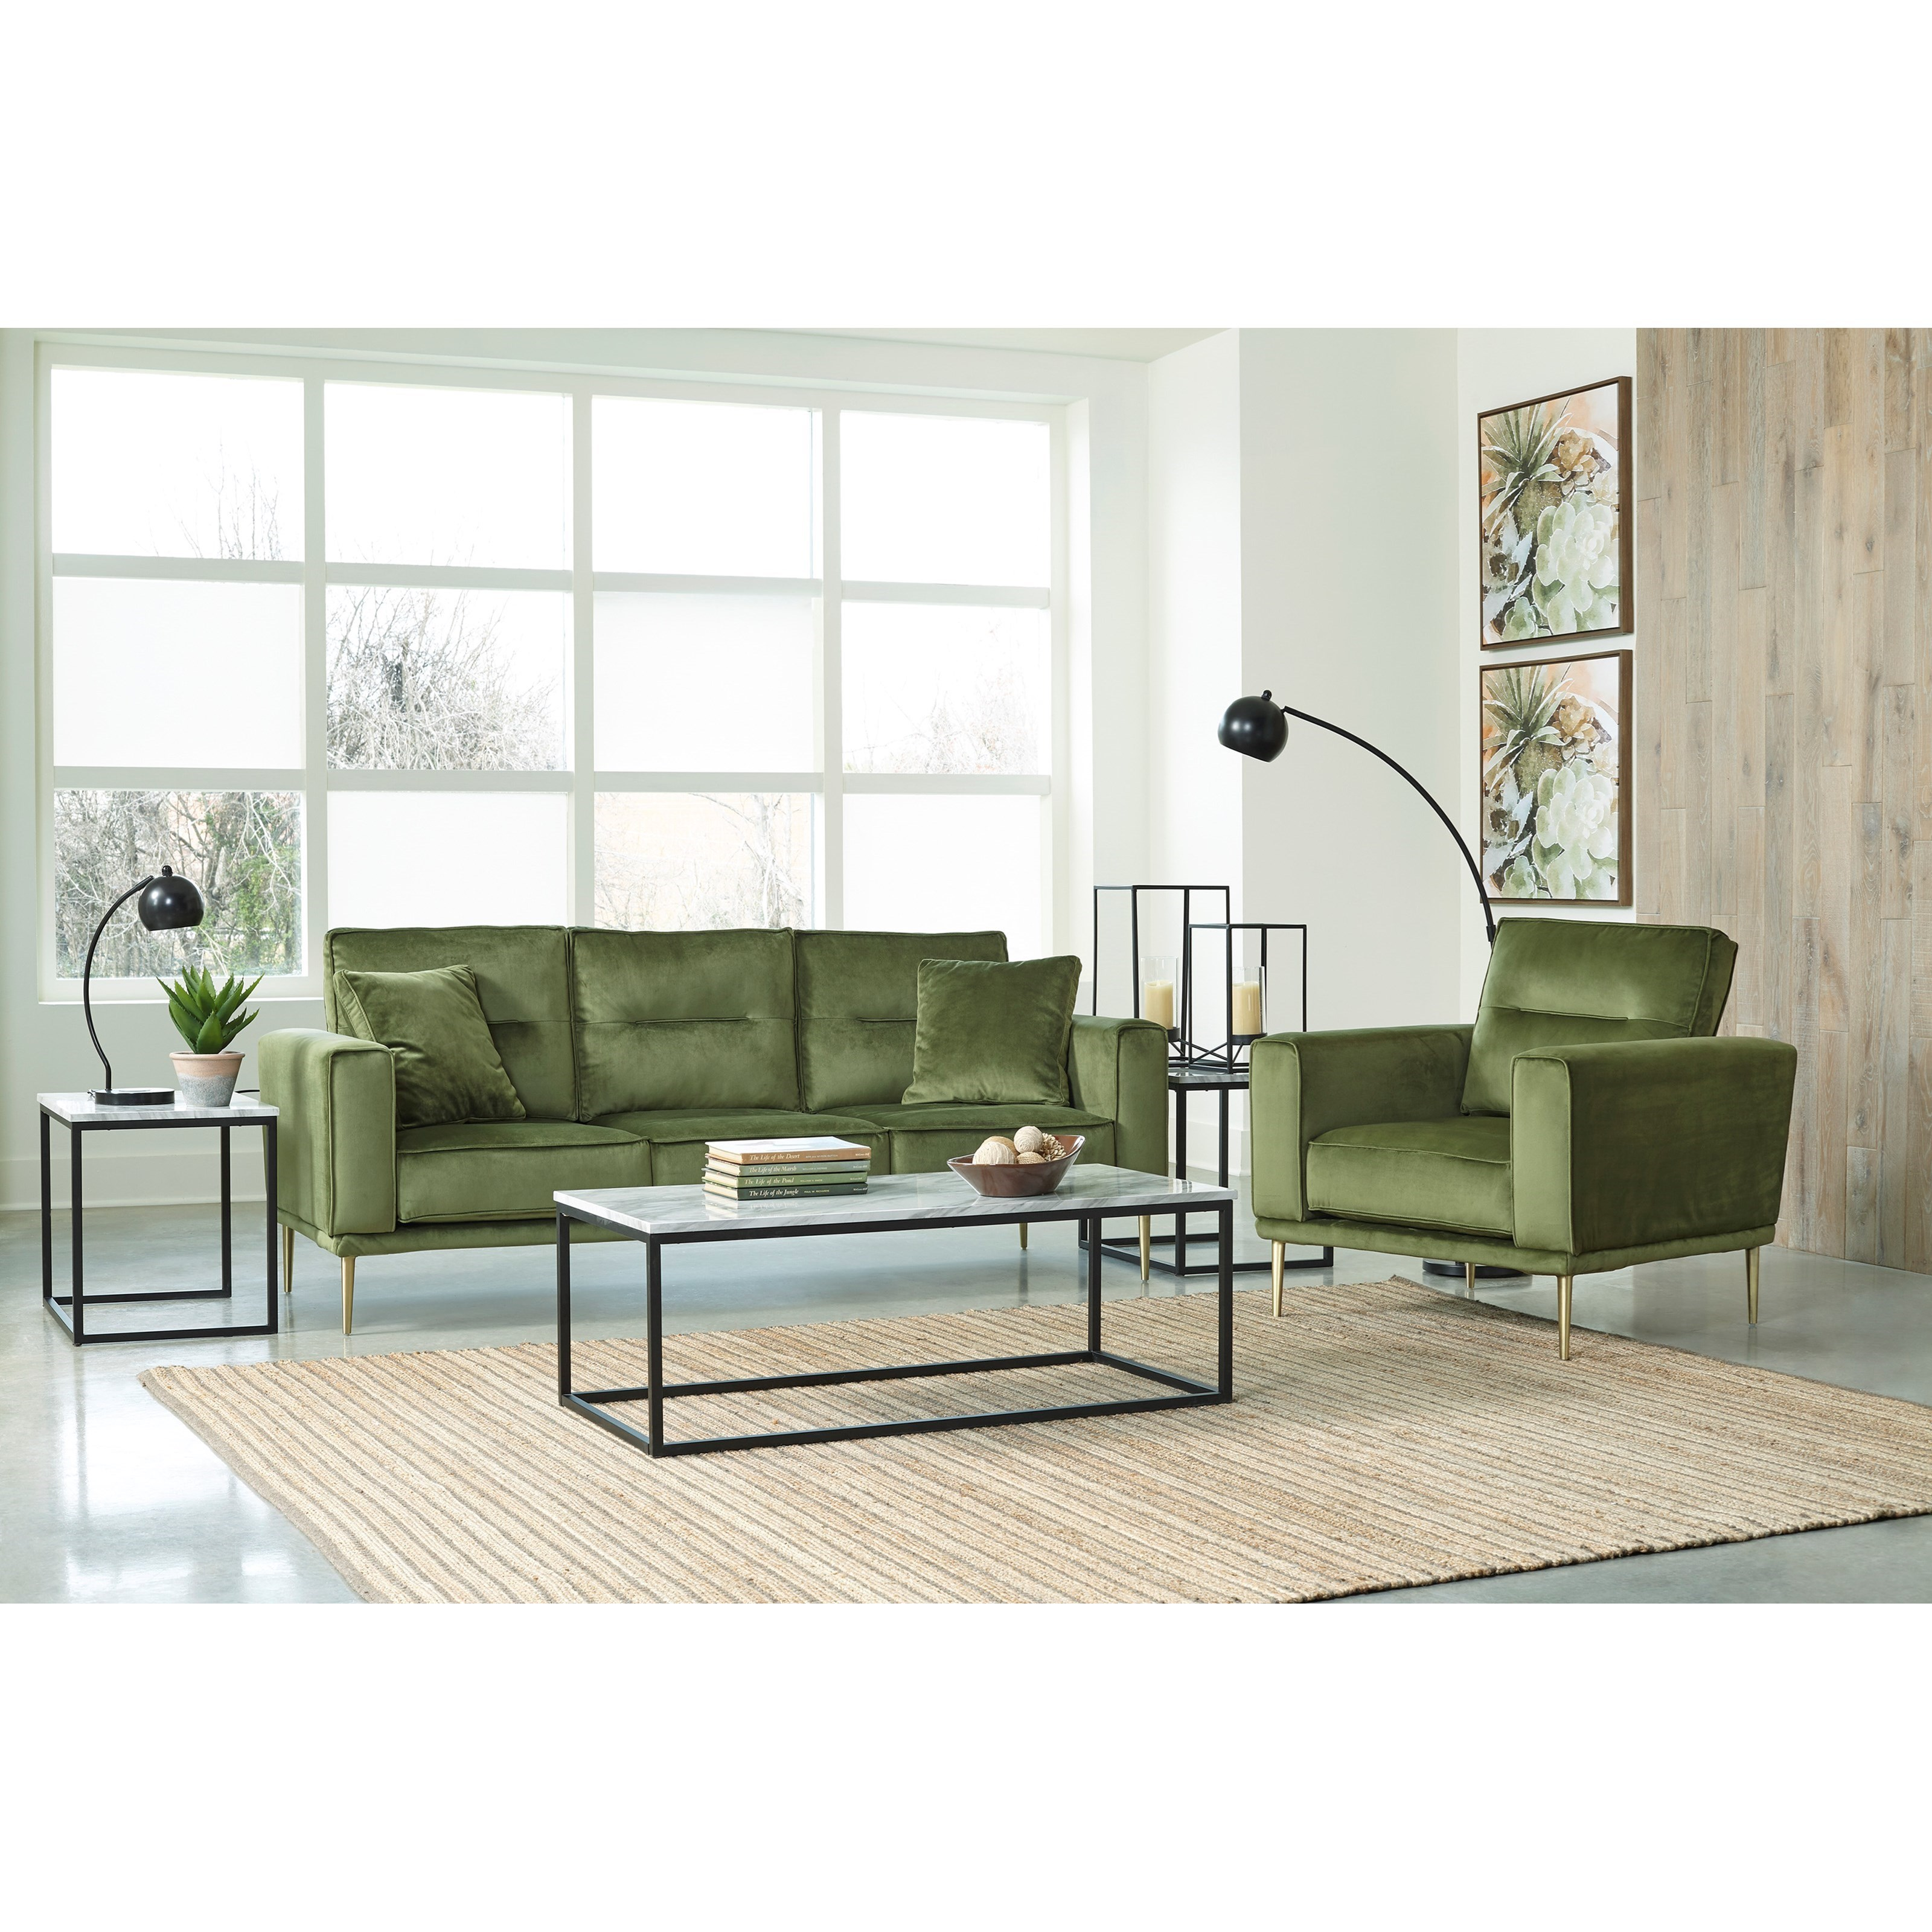 Macleary Living Room Group by Signature Design by Ashley at Catalog Outlet